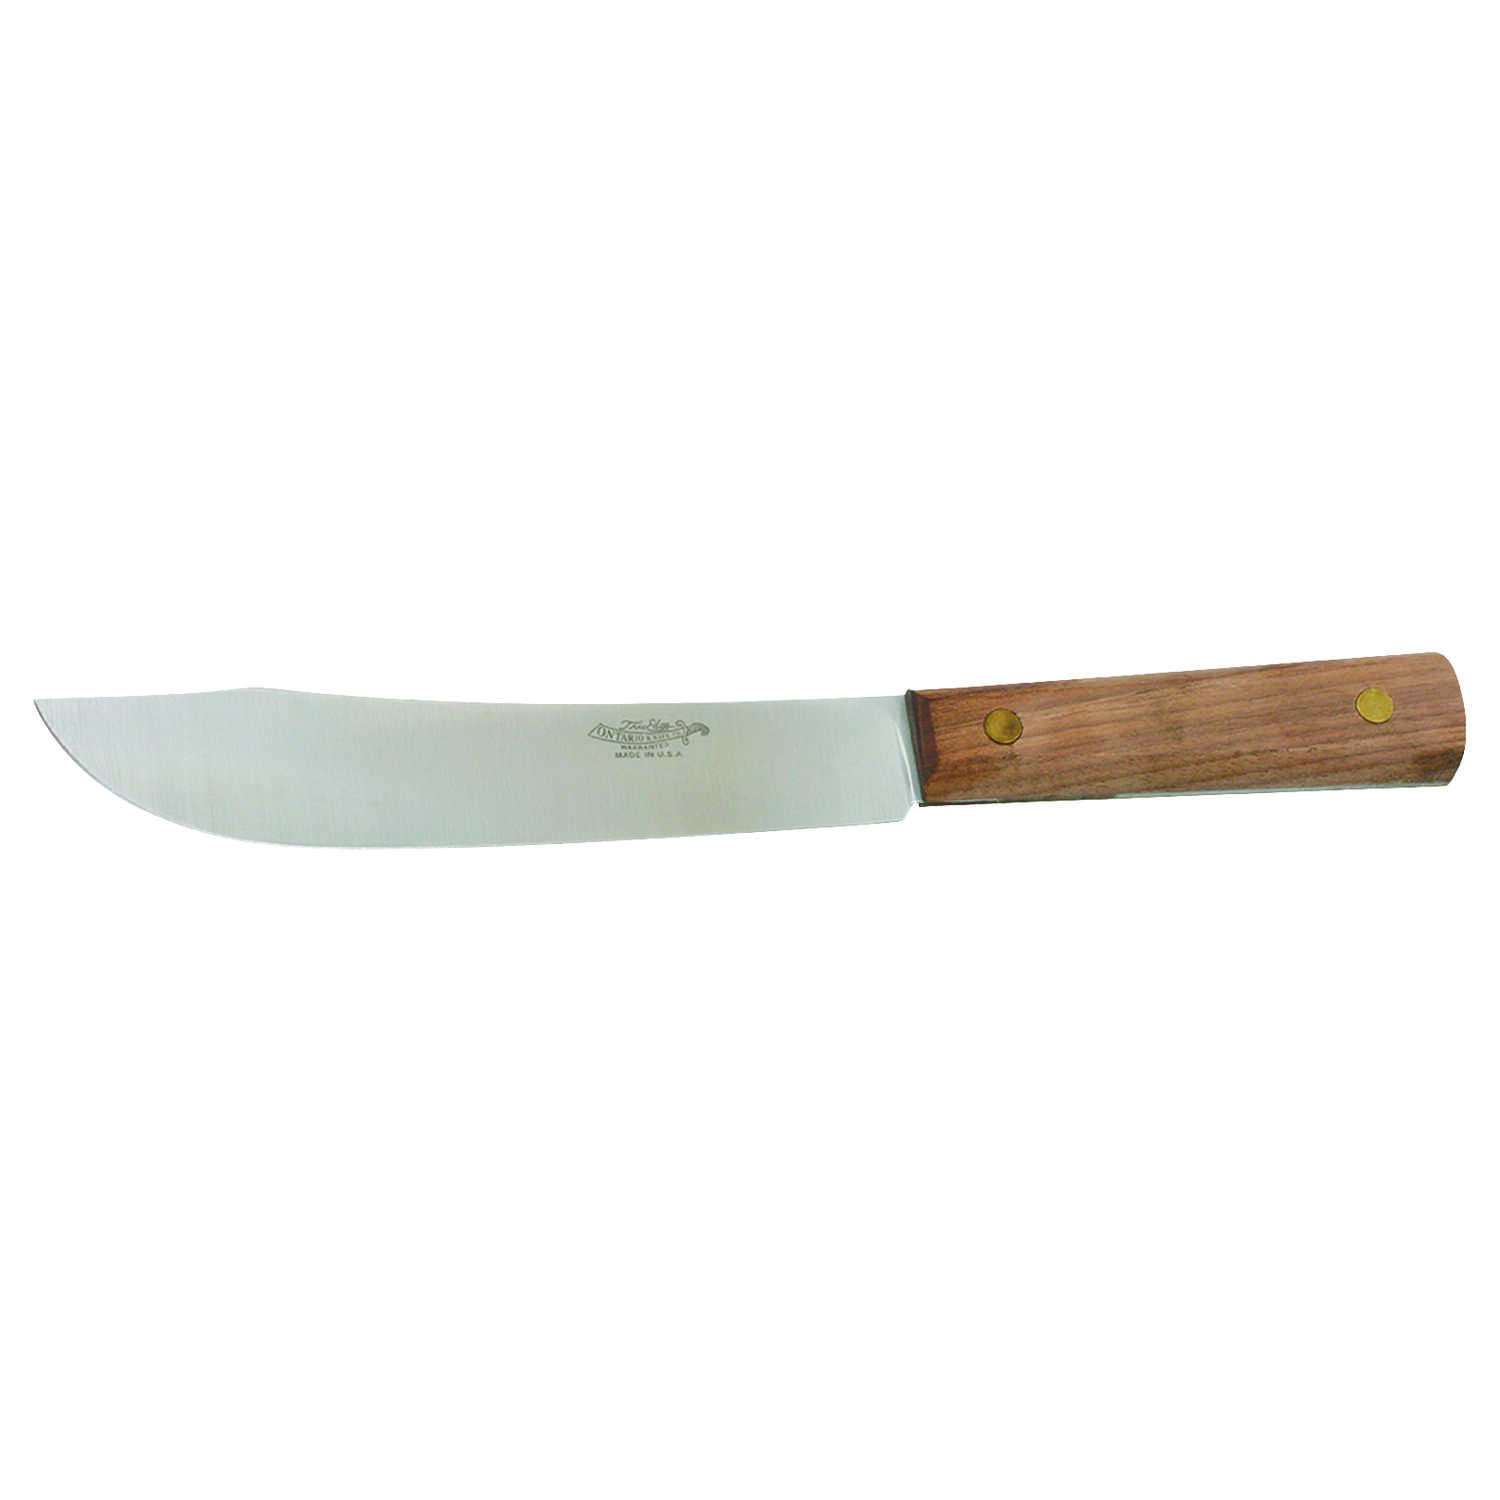 Ontario Knife  7 in. L Carbon Steel  Hop Knife  1 pc.